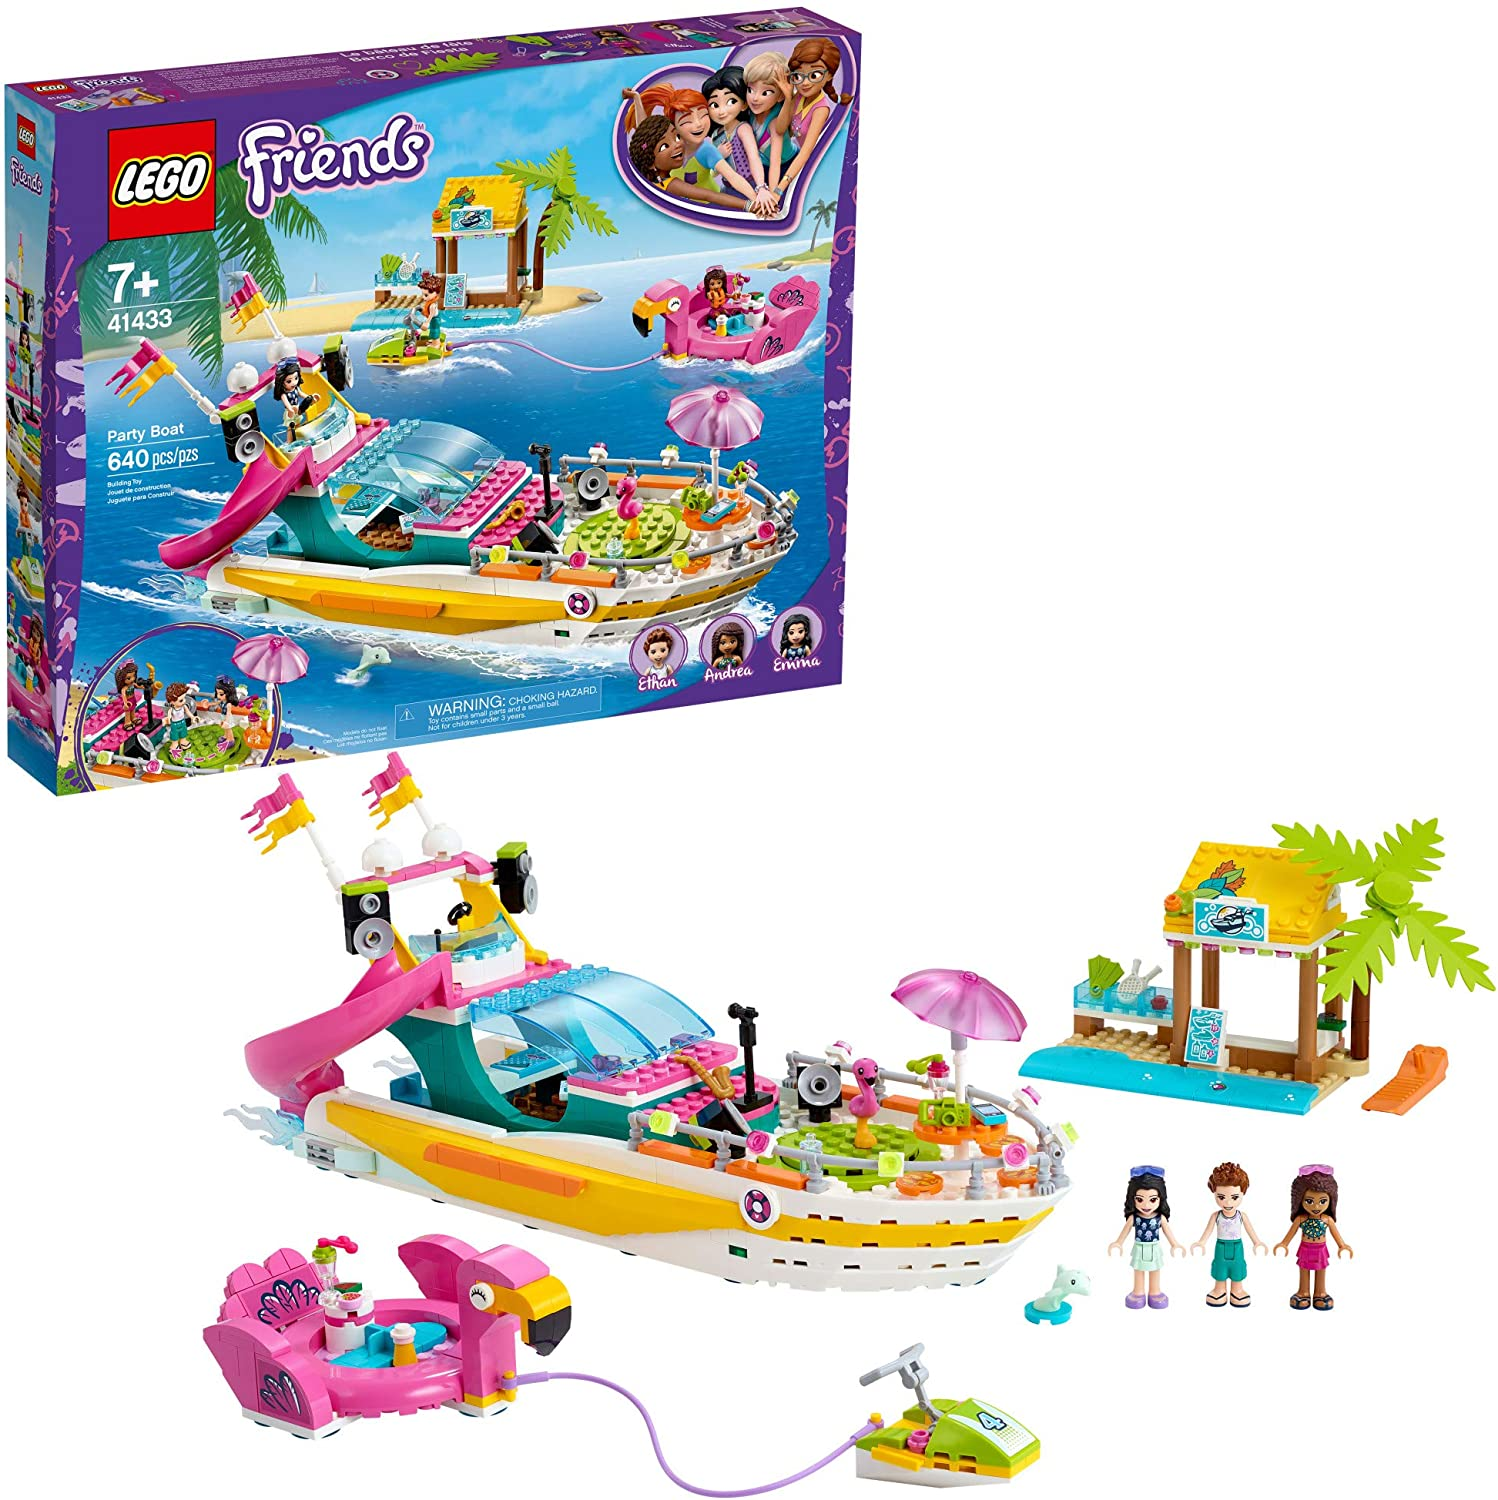 LEGO Friends Party Boat